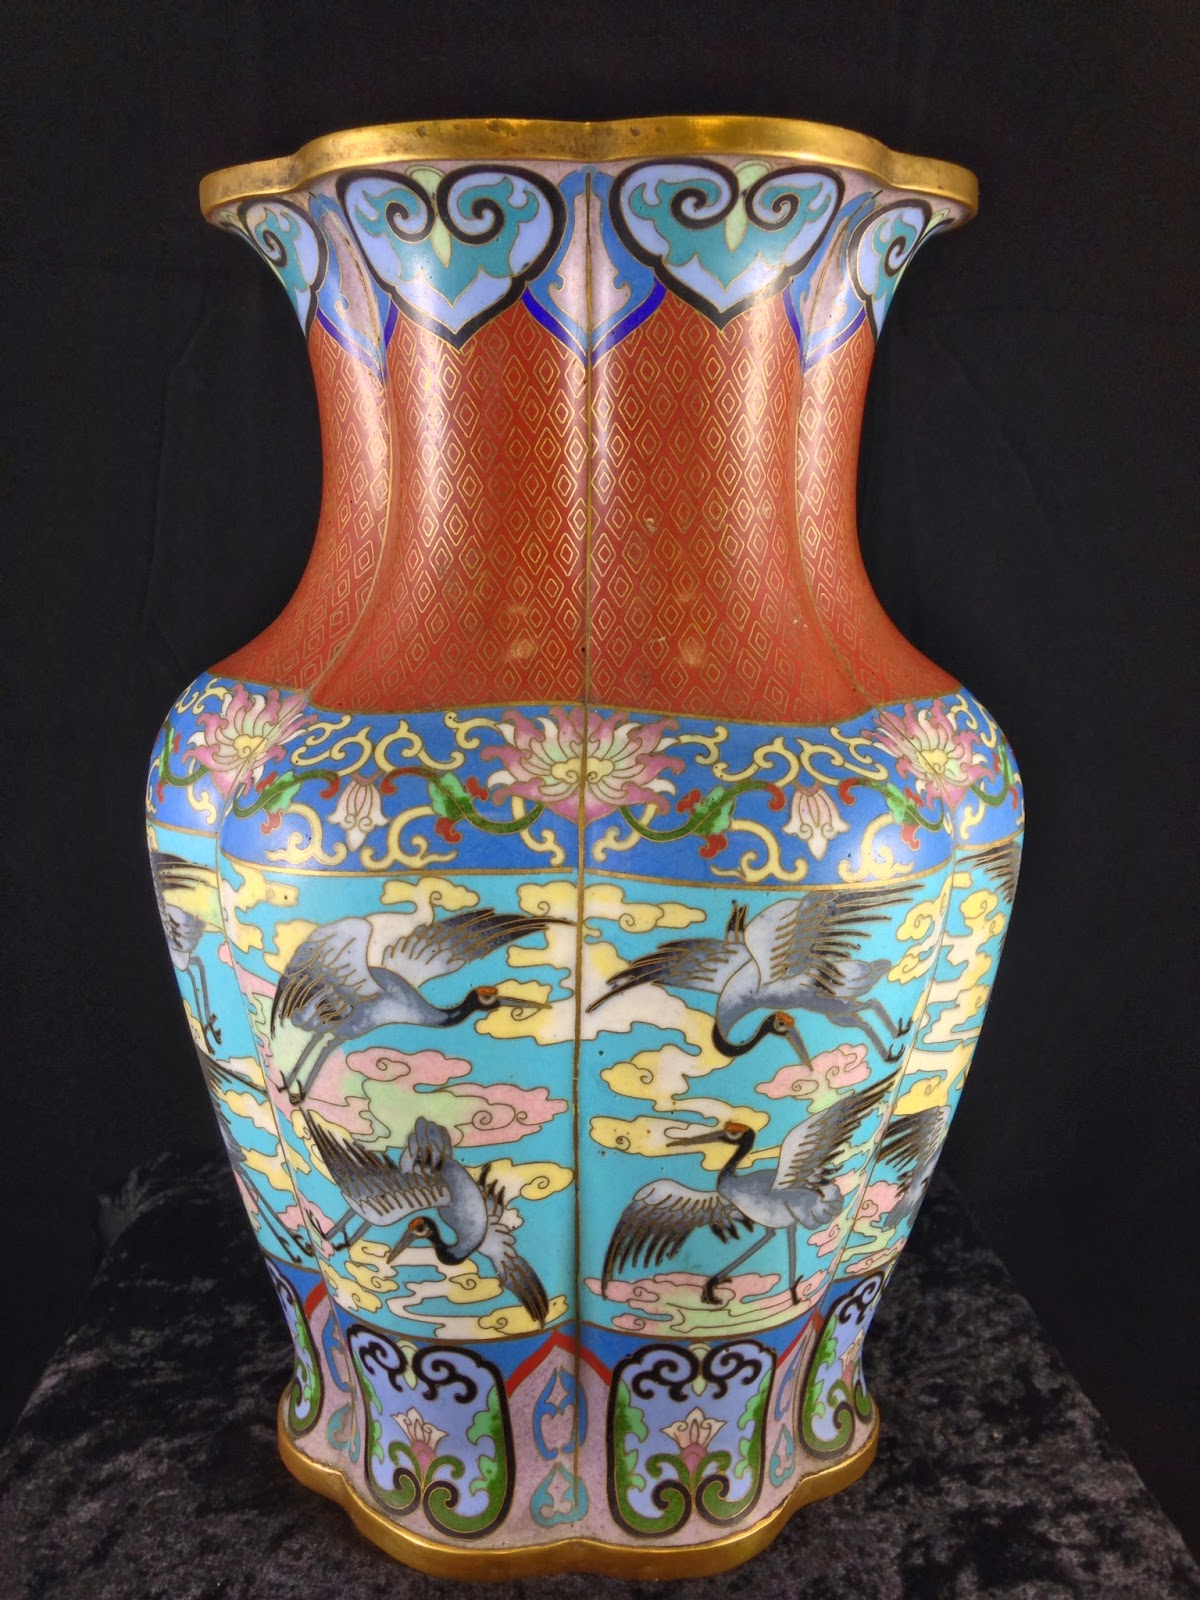 ANTIQUE CHINESE SIGNED CLOISONNÉ ENAMEL VASE